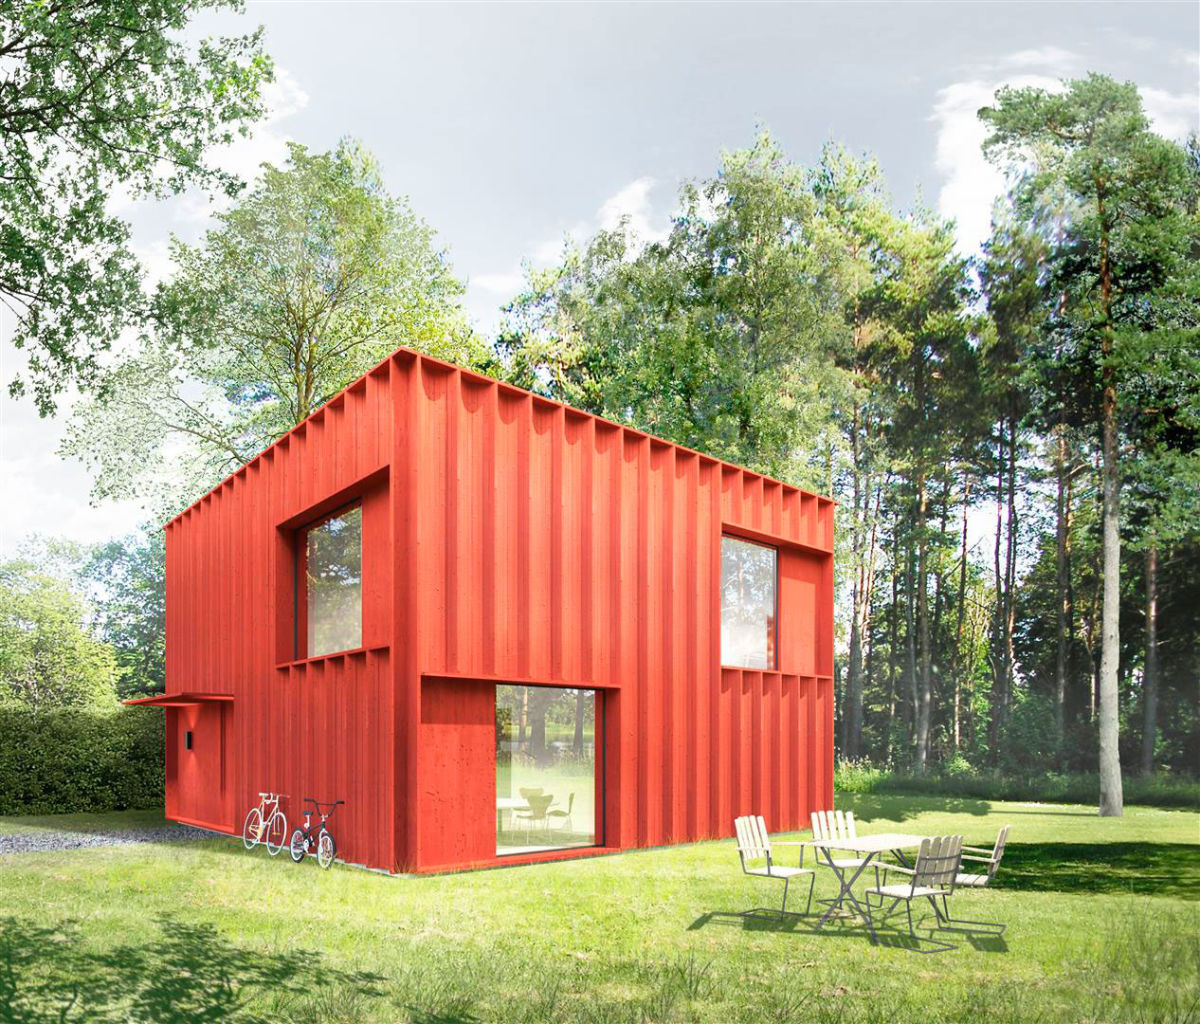 Tham videg rd arkitekter the hemnet home divisare - The house of clicks the visual experiment of swedish architects ...